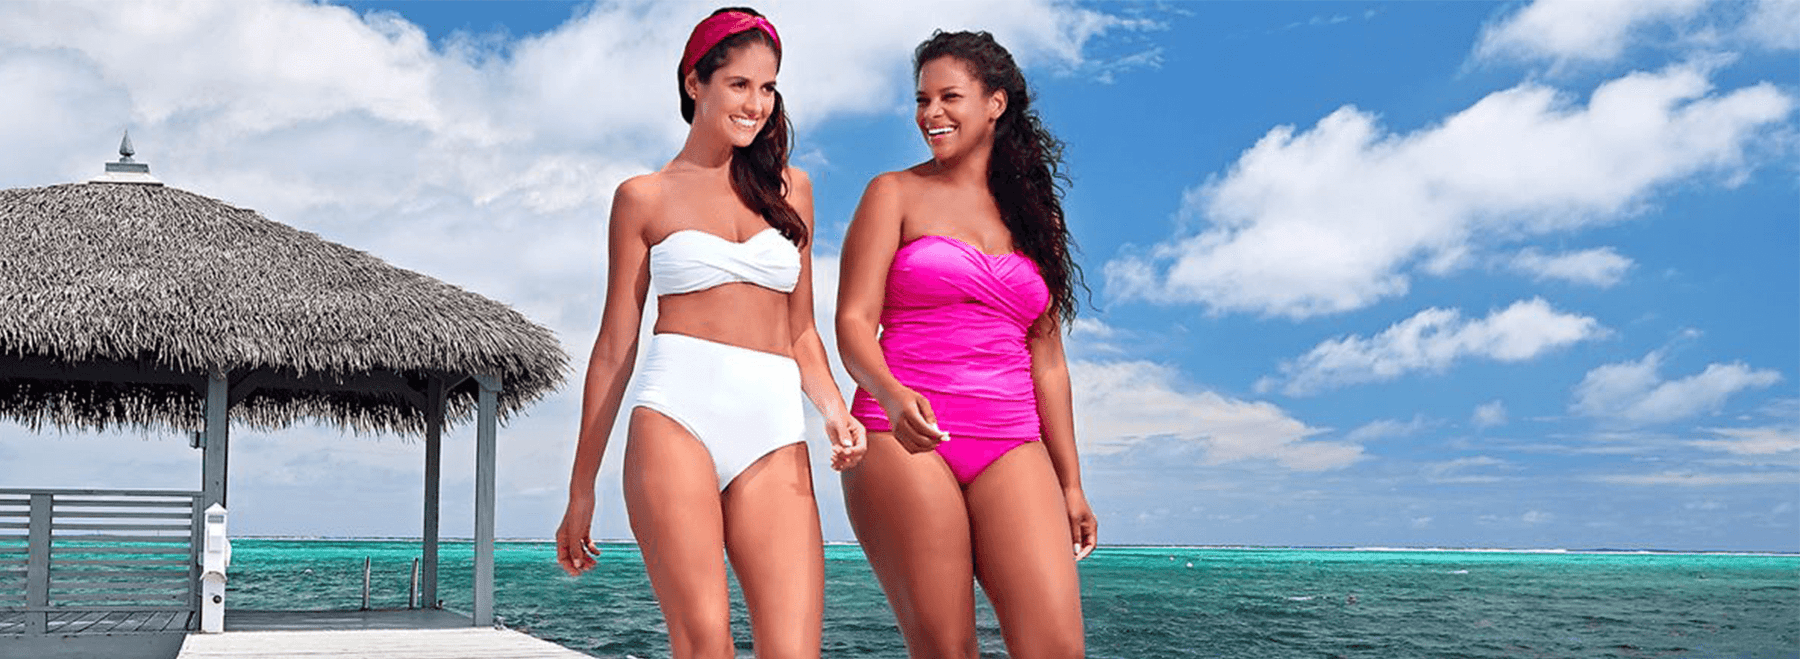 Best Bathing Suit Styles For Women With Larger Busts